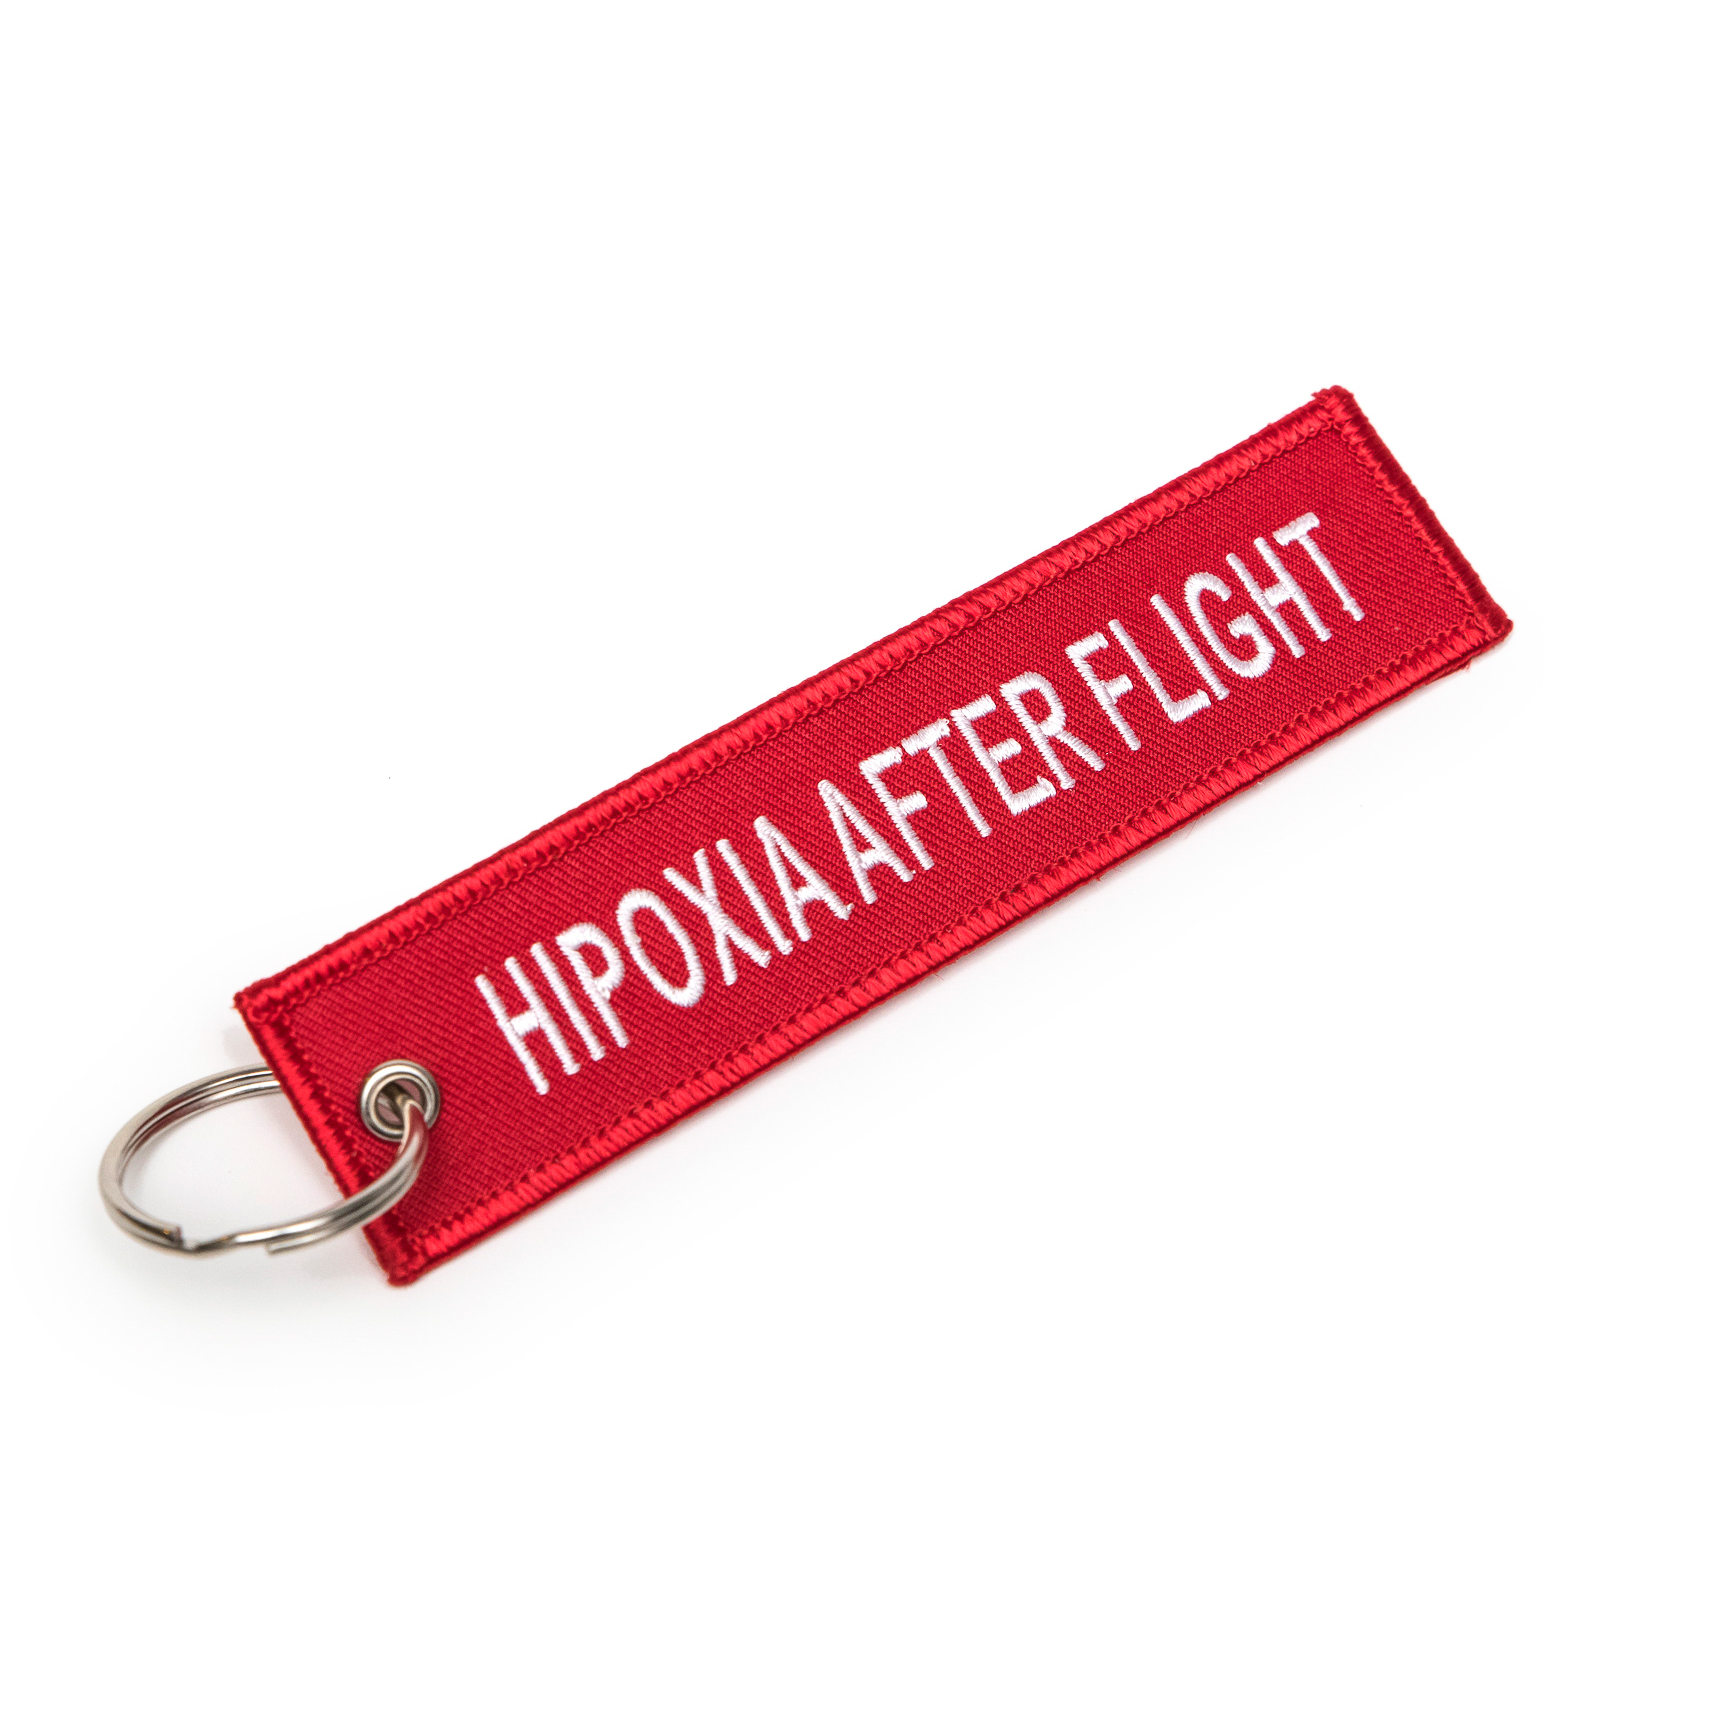 HIPOXIA AFTER FLIGHT Keychain